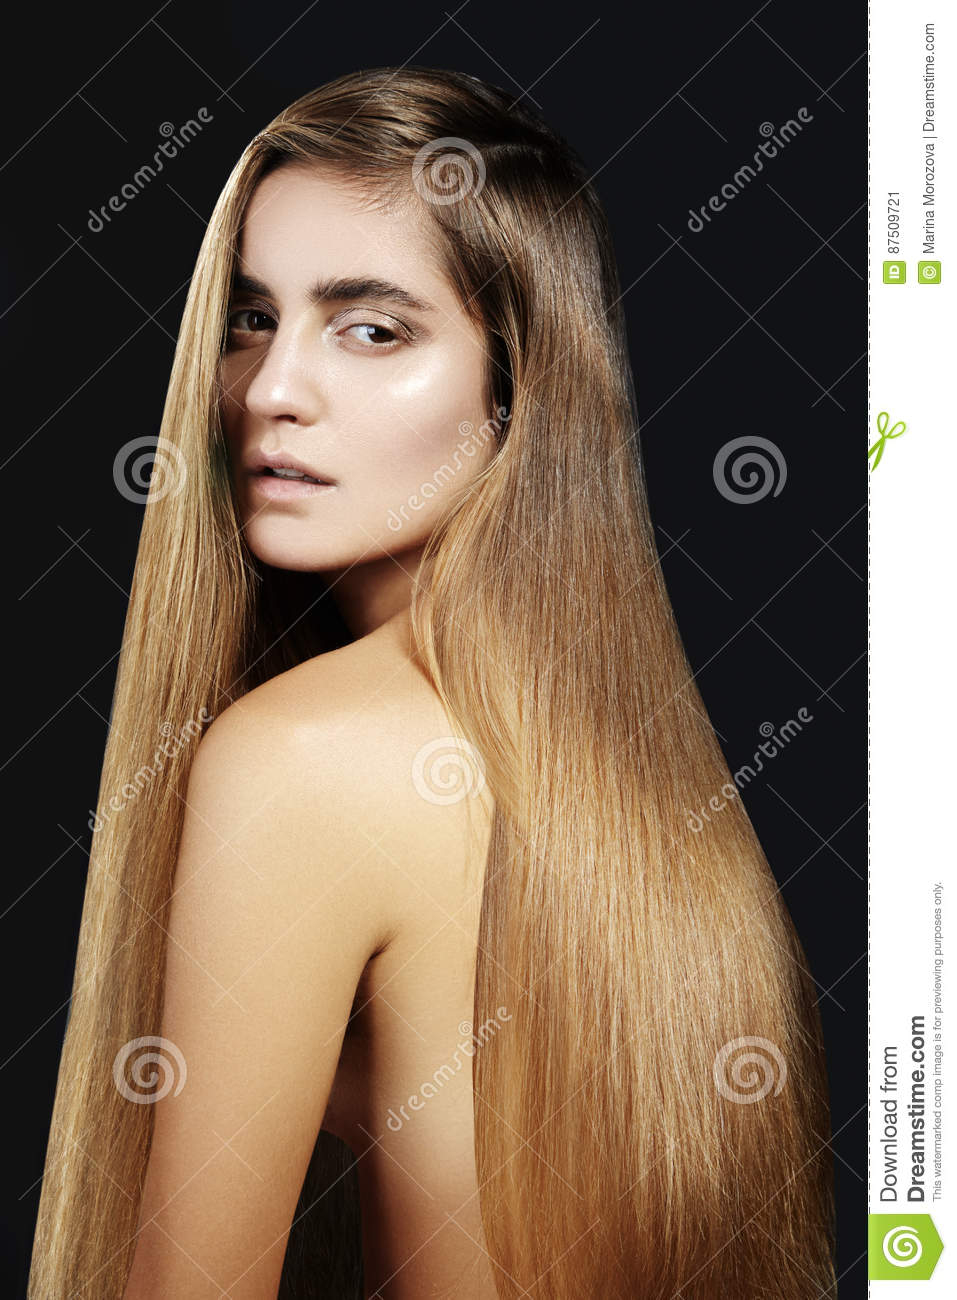 Hair Coloring Girl In The Beauty Salon Stock Photography 90383360